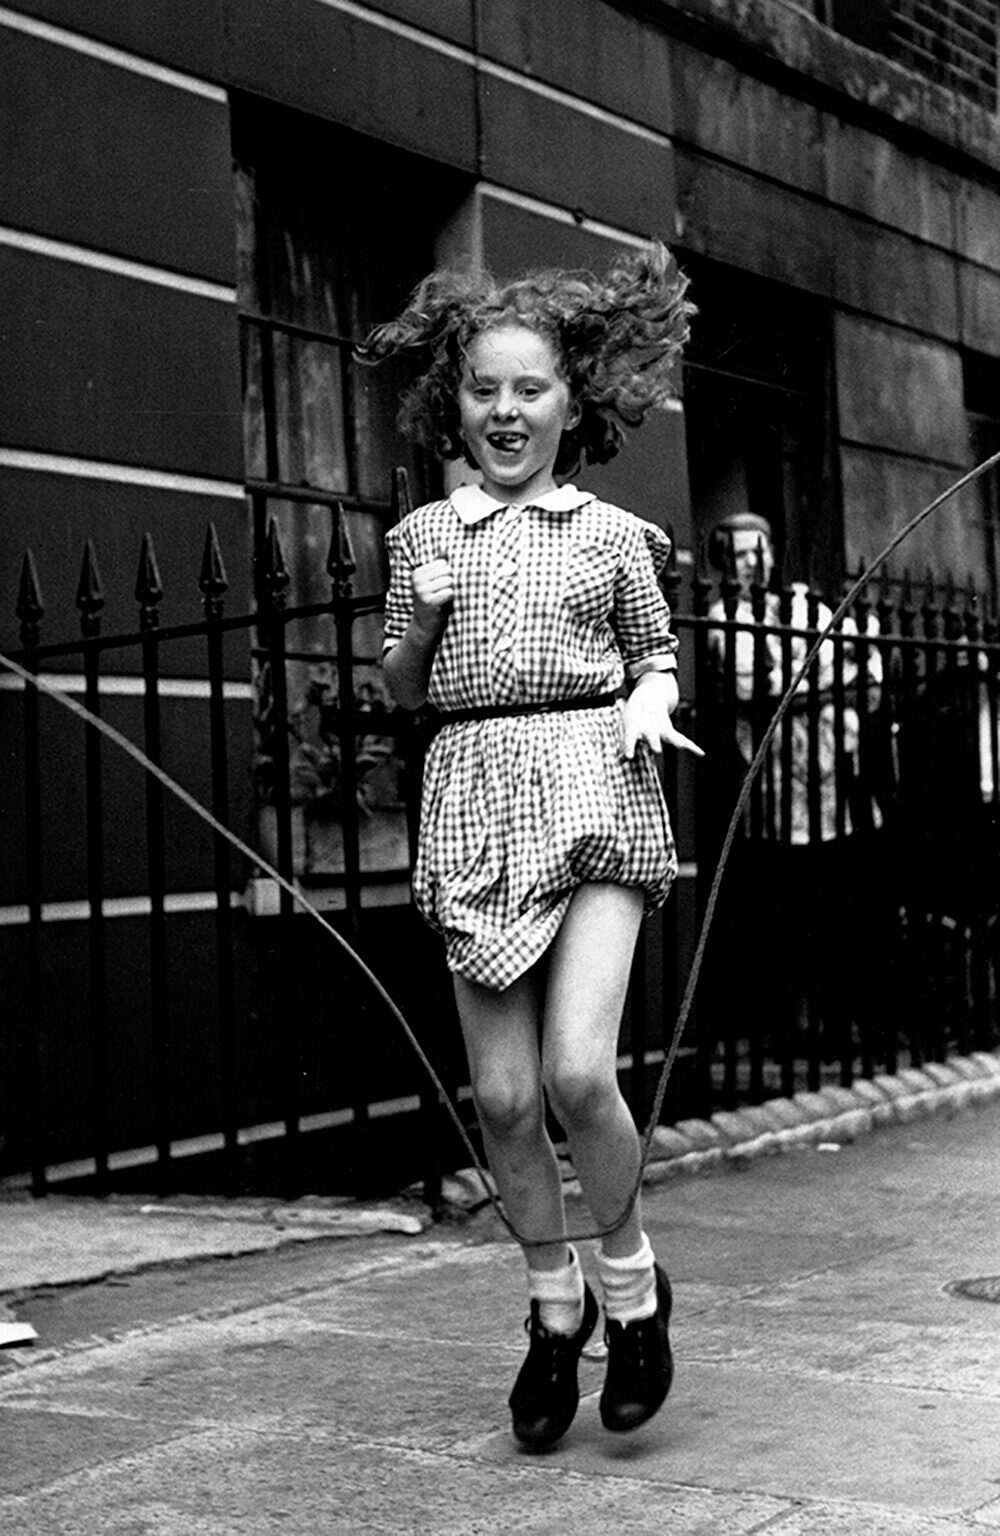 Skipping Rope fine art photography